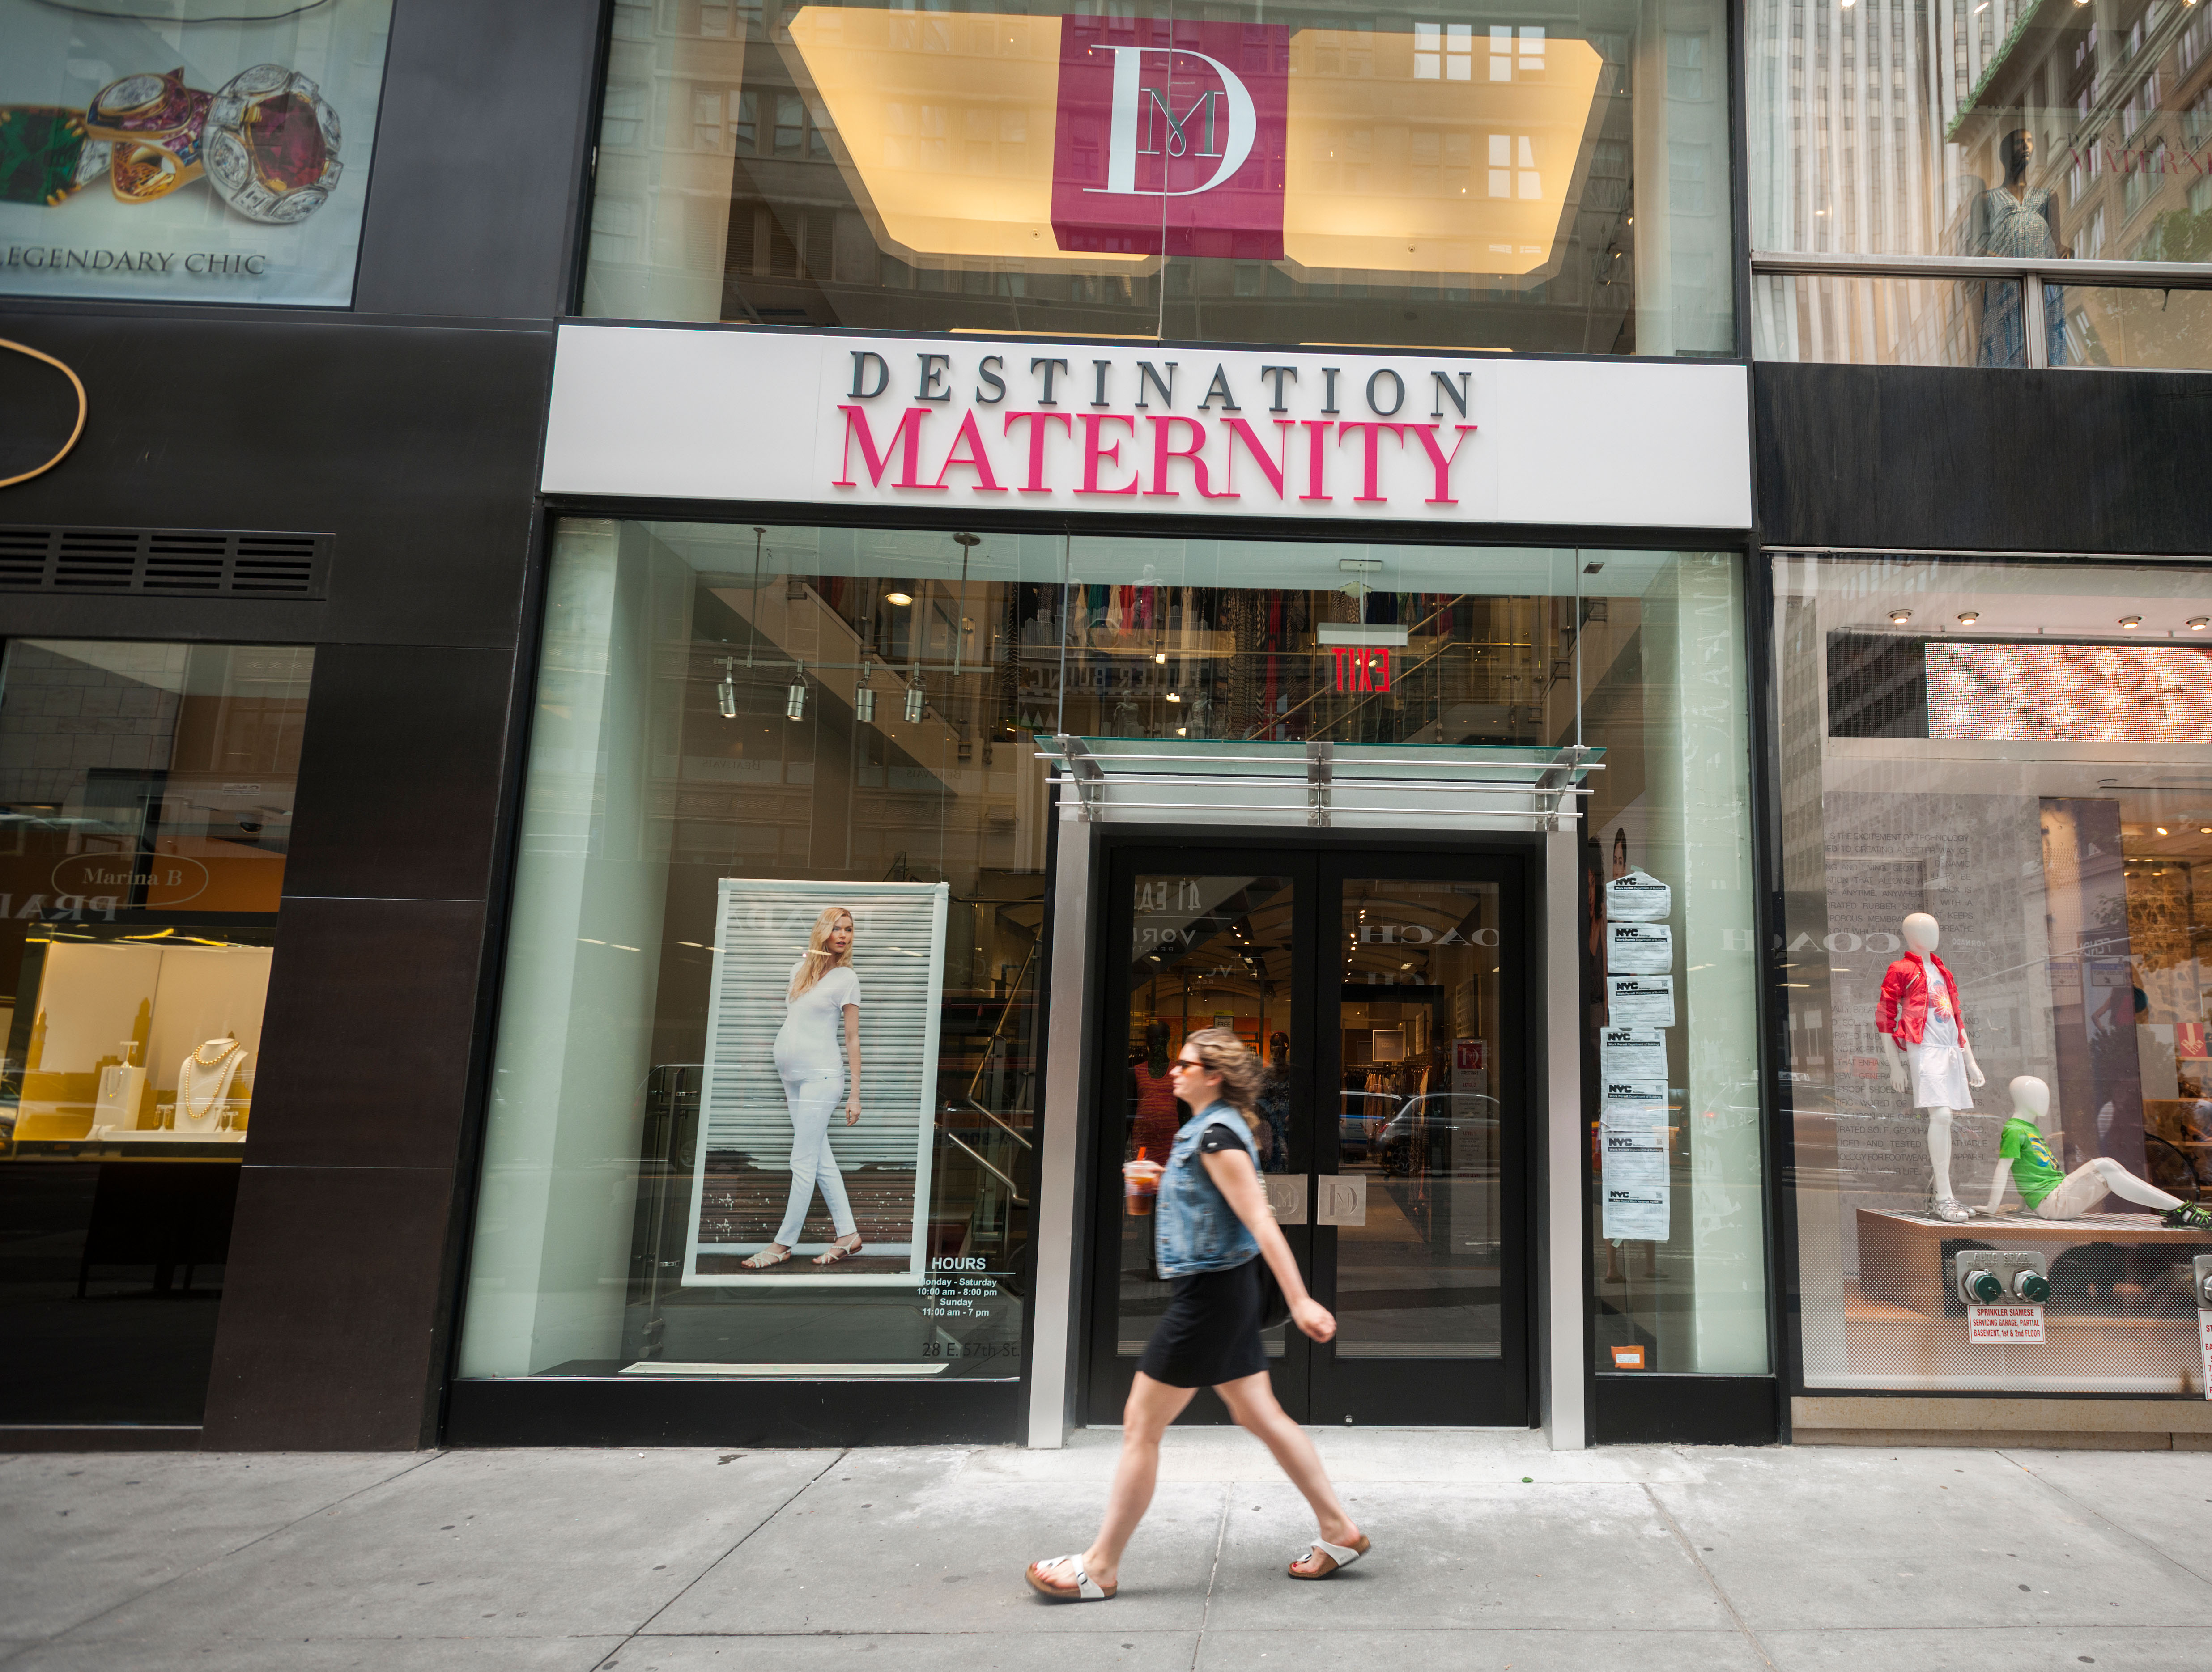 A Destination Maternity store in Midtown Manhattan in New York